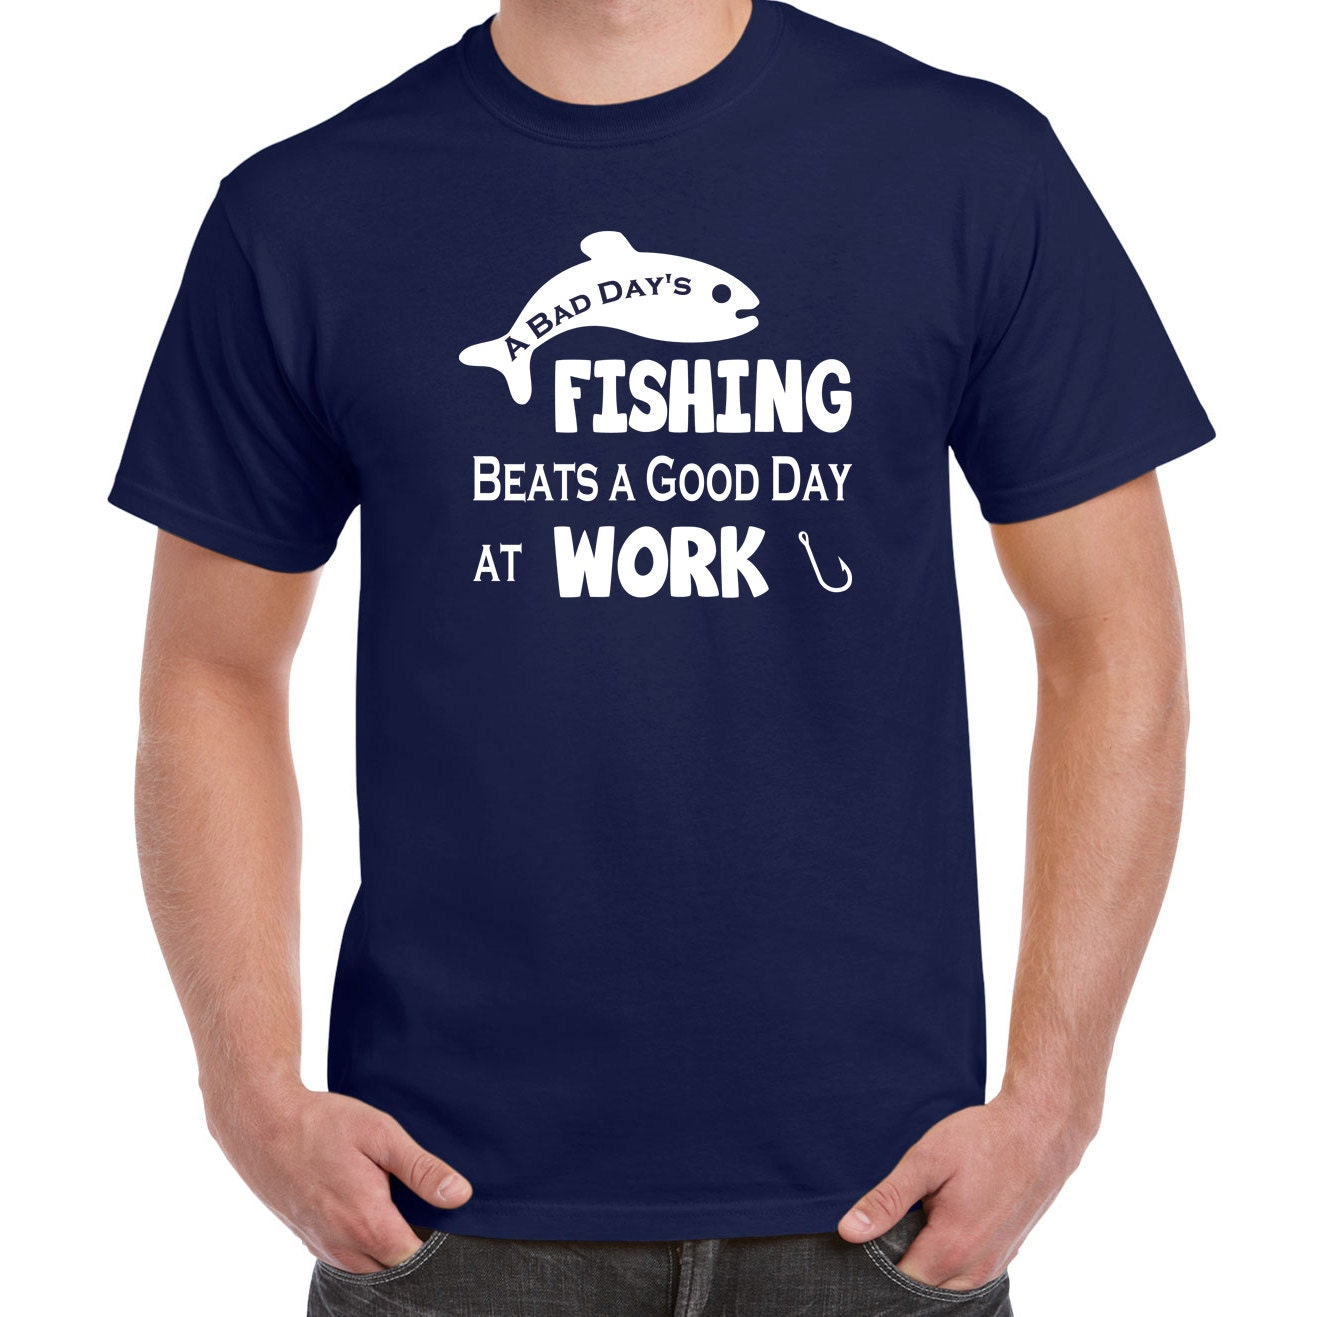 Fishing shirt fishing t shirt funny fishing shirts mens for Funny fishing shirts